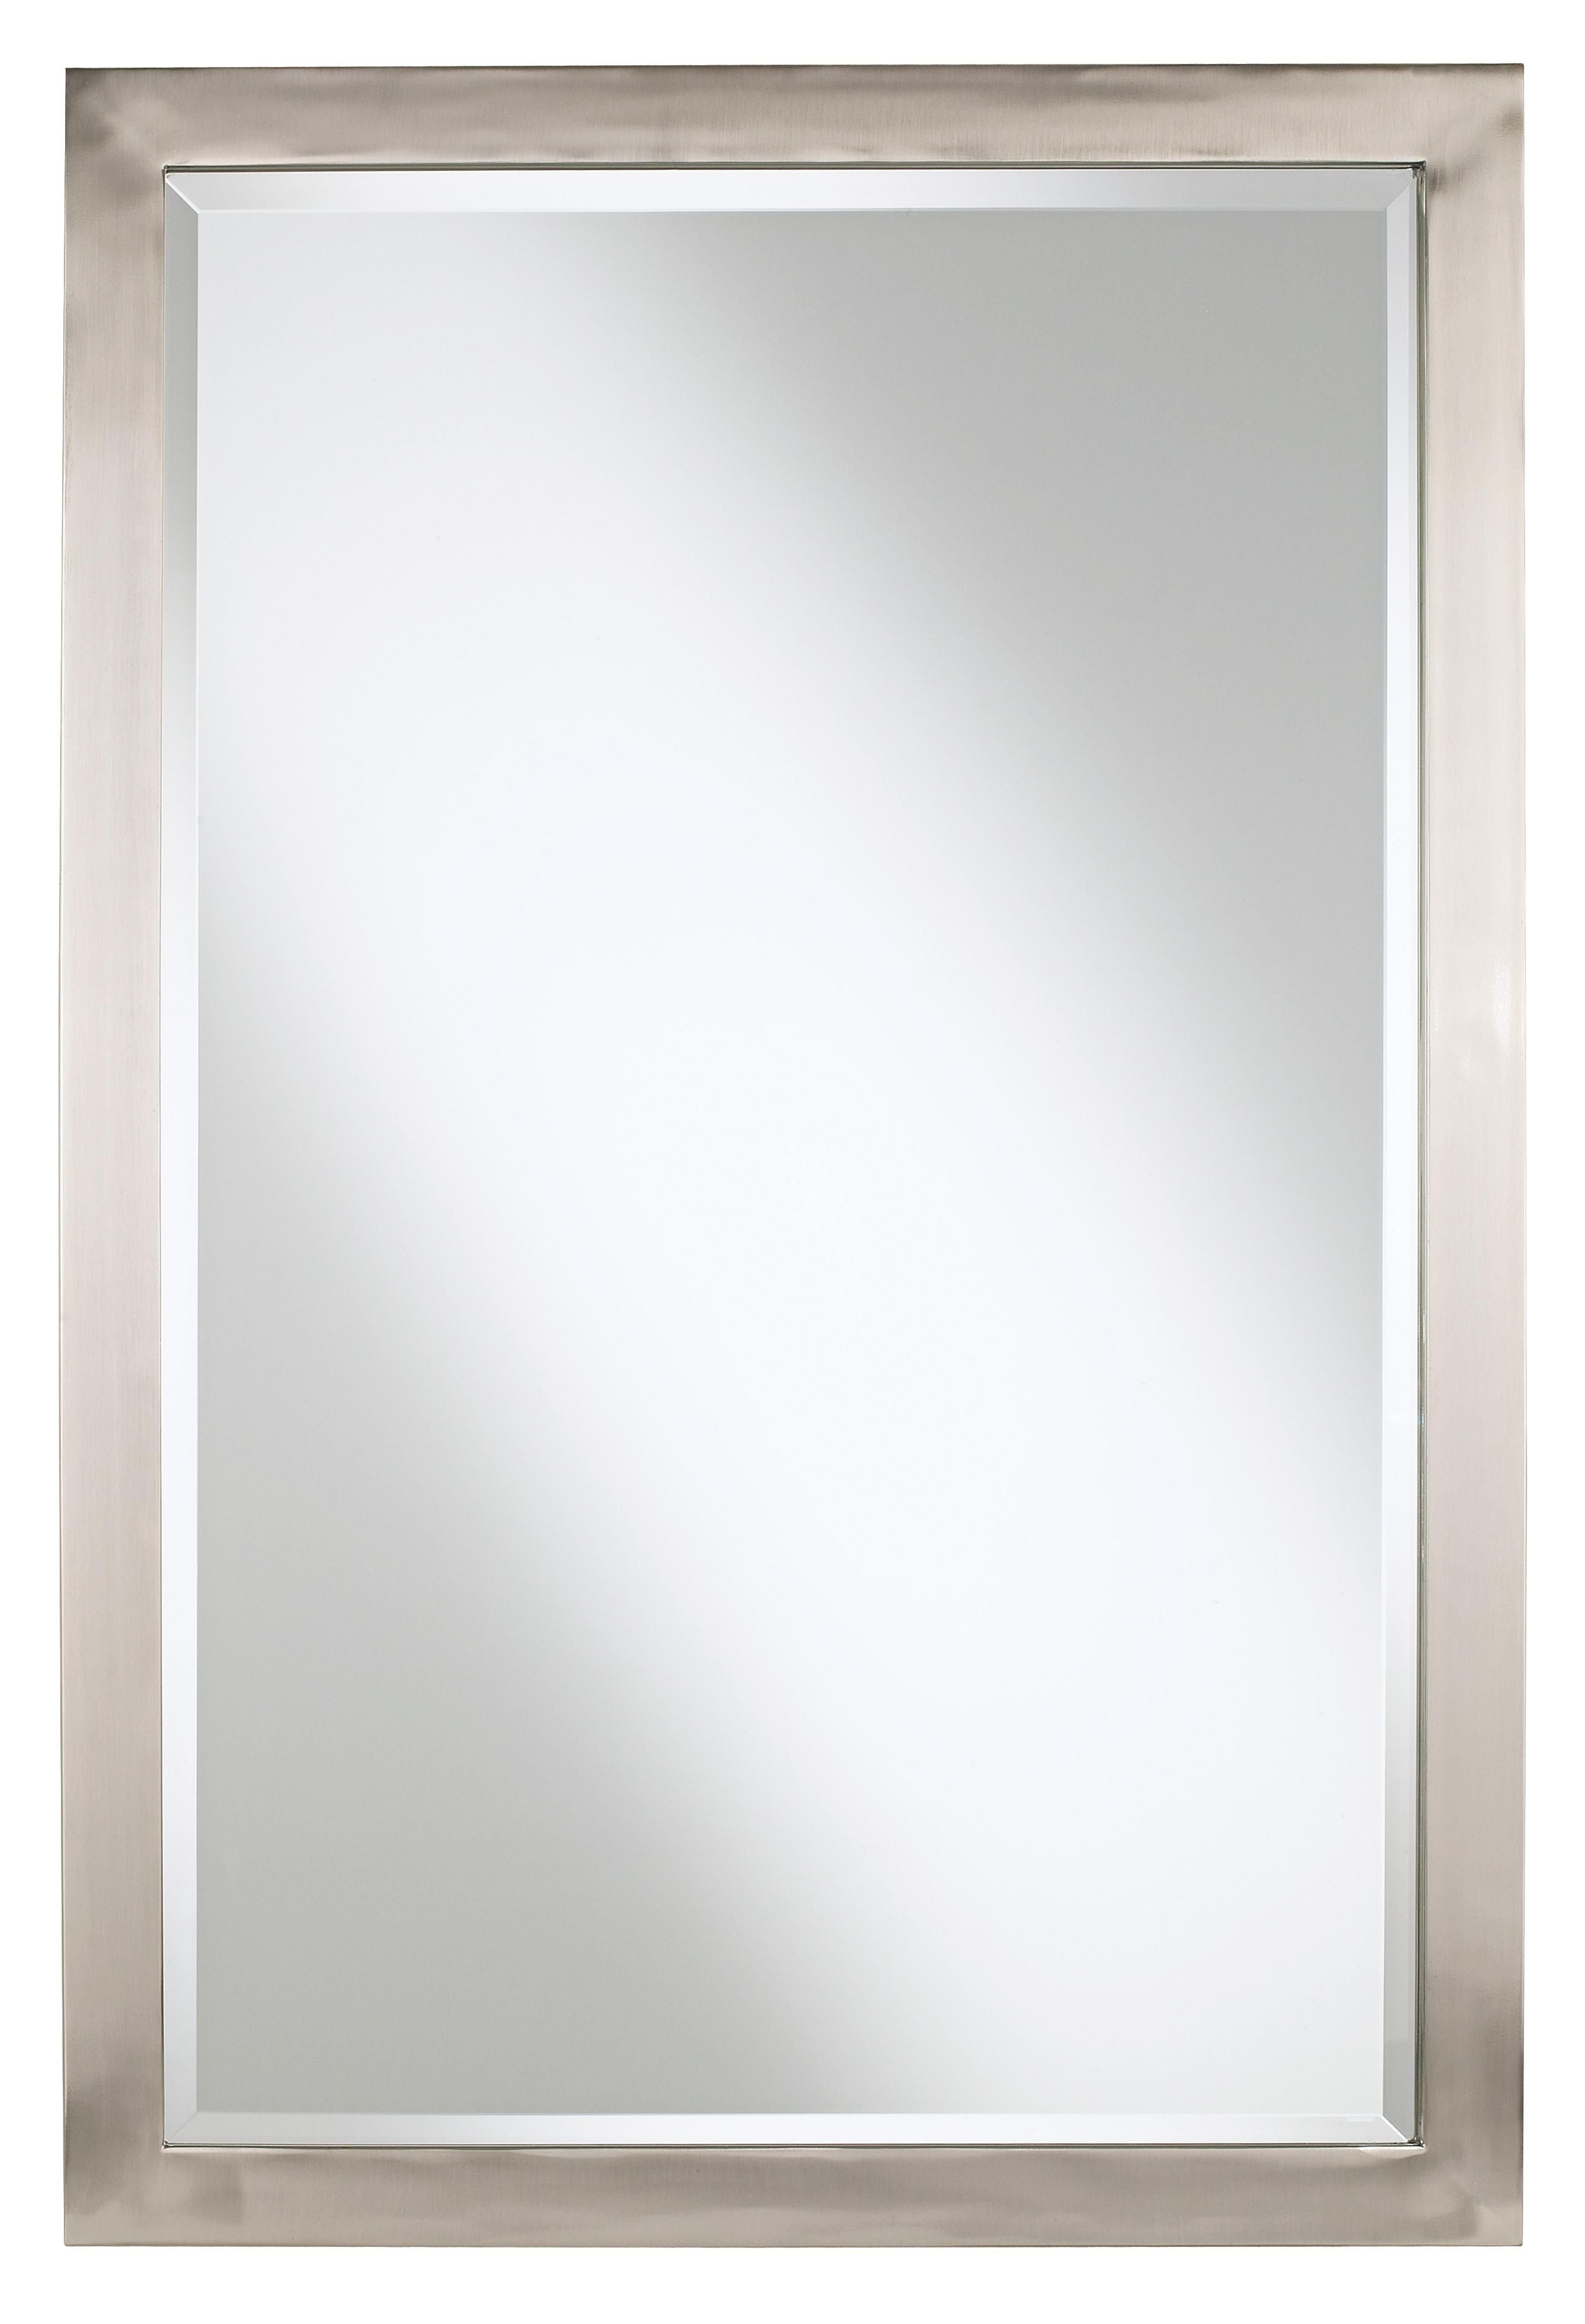 "Brushed Nickel Wall Mirrors For Bathroom With Well Known Possini Euro Metzeo 22"" X 33"" Metal Wall Mirror (View 6 of 20)"